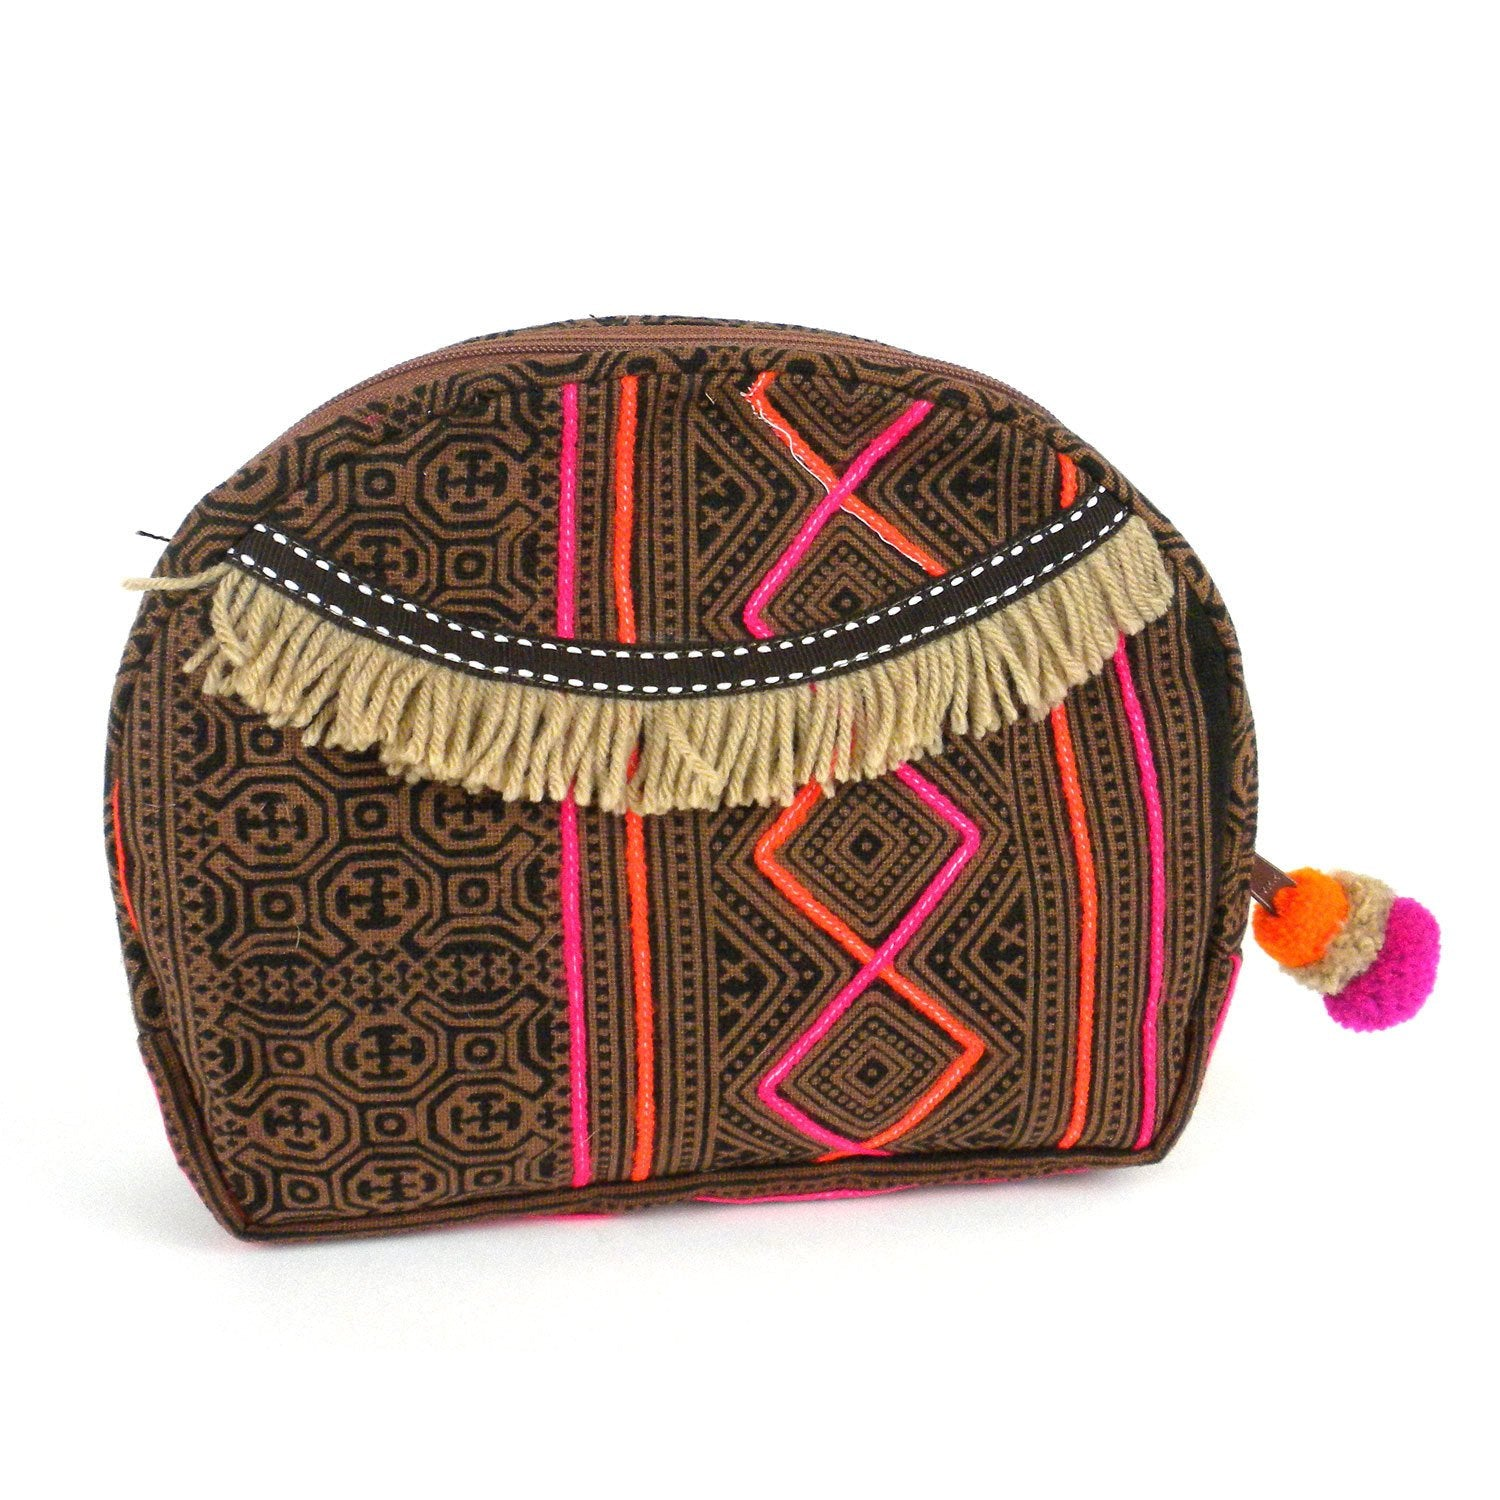 "Hmong Batik Collection 8"" x 9"" Cosmetic Bag, Earth"